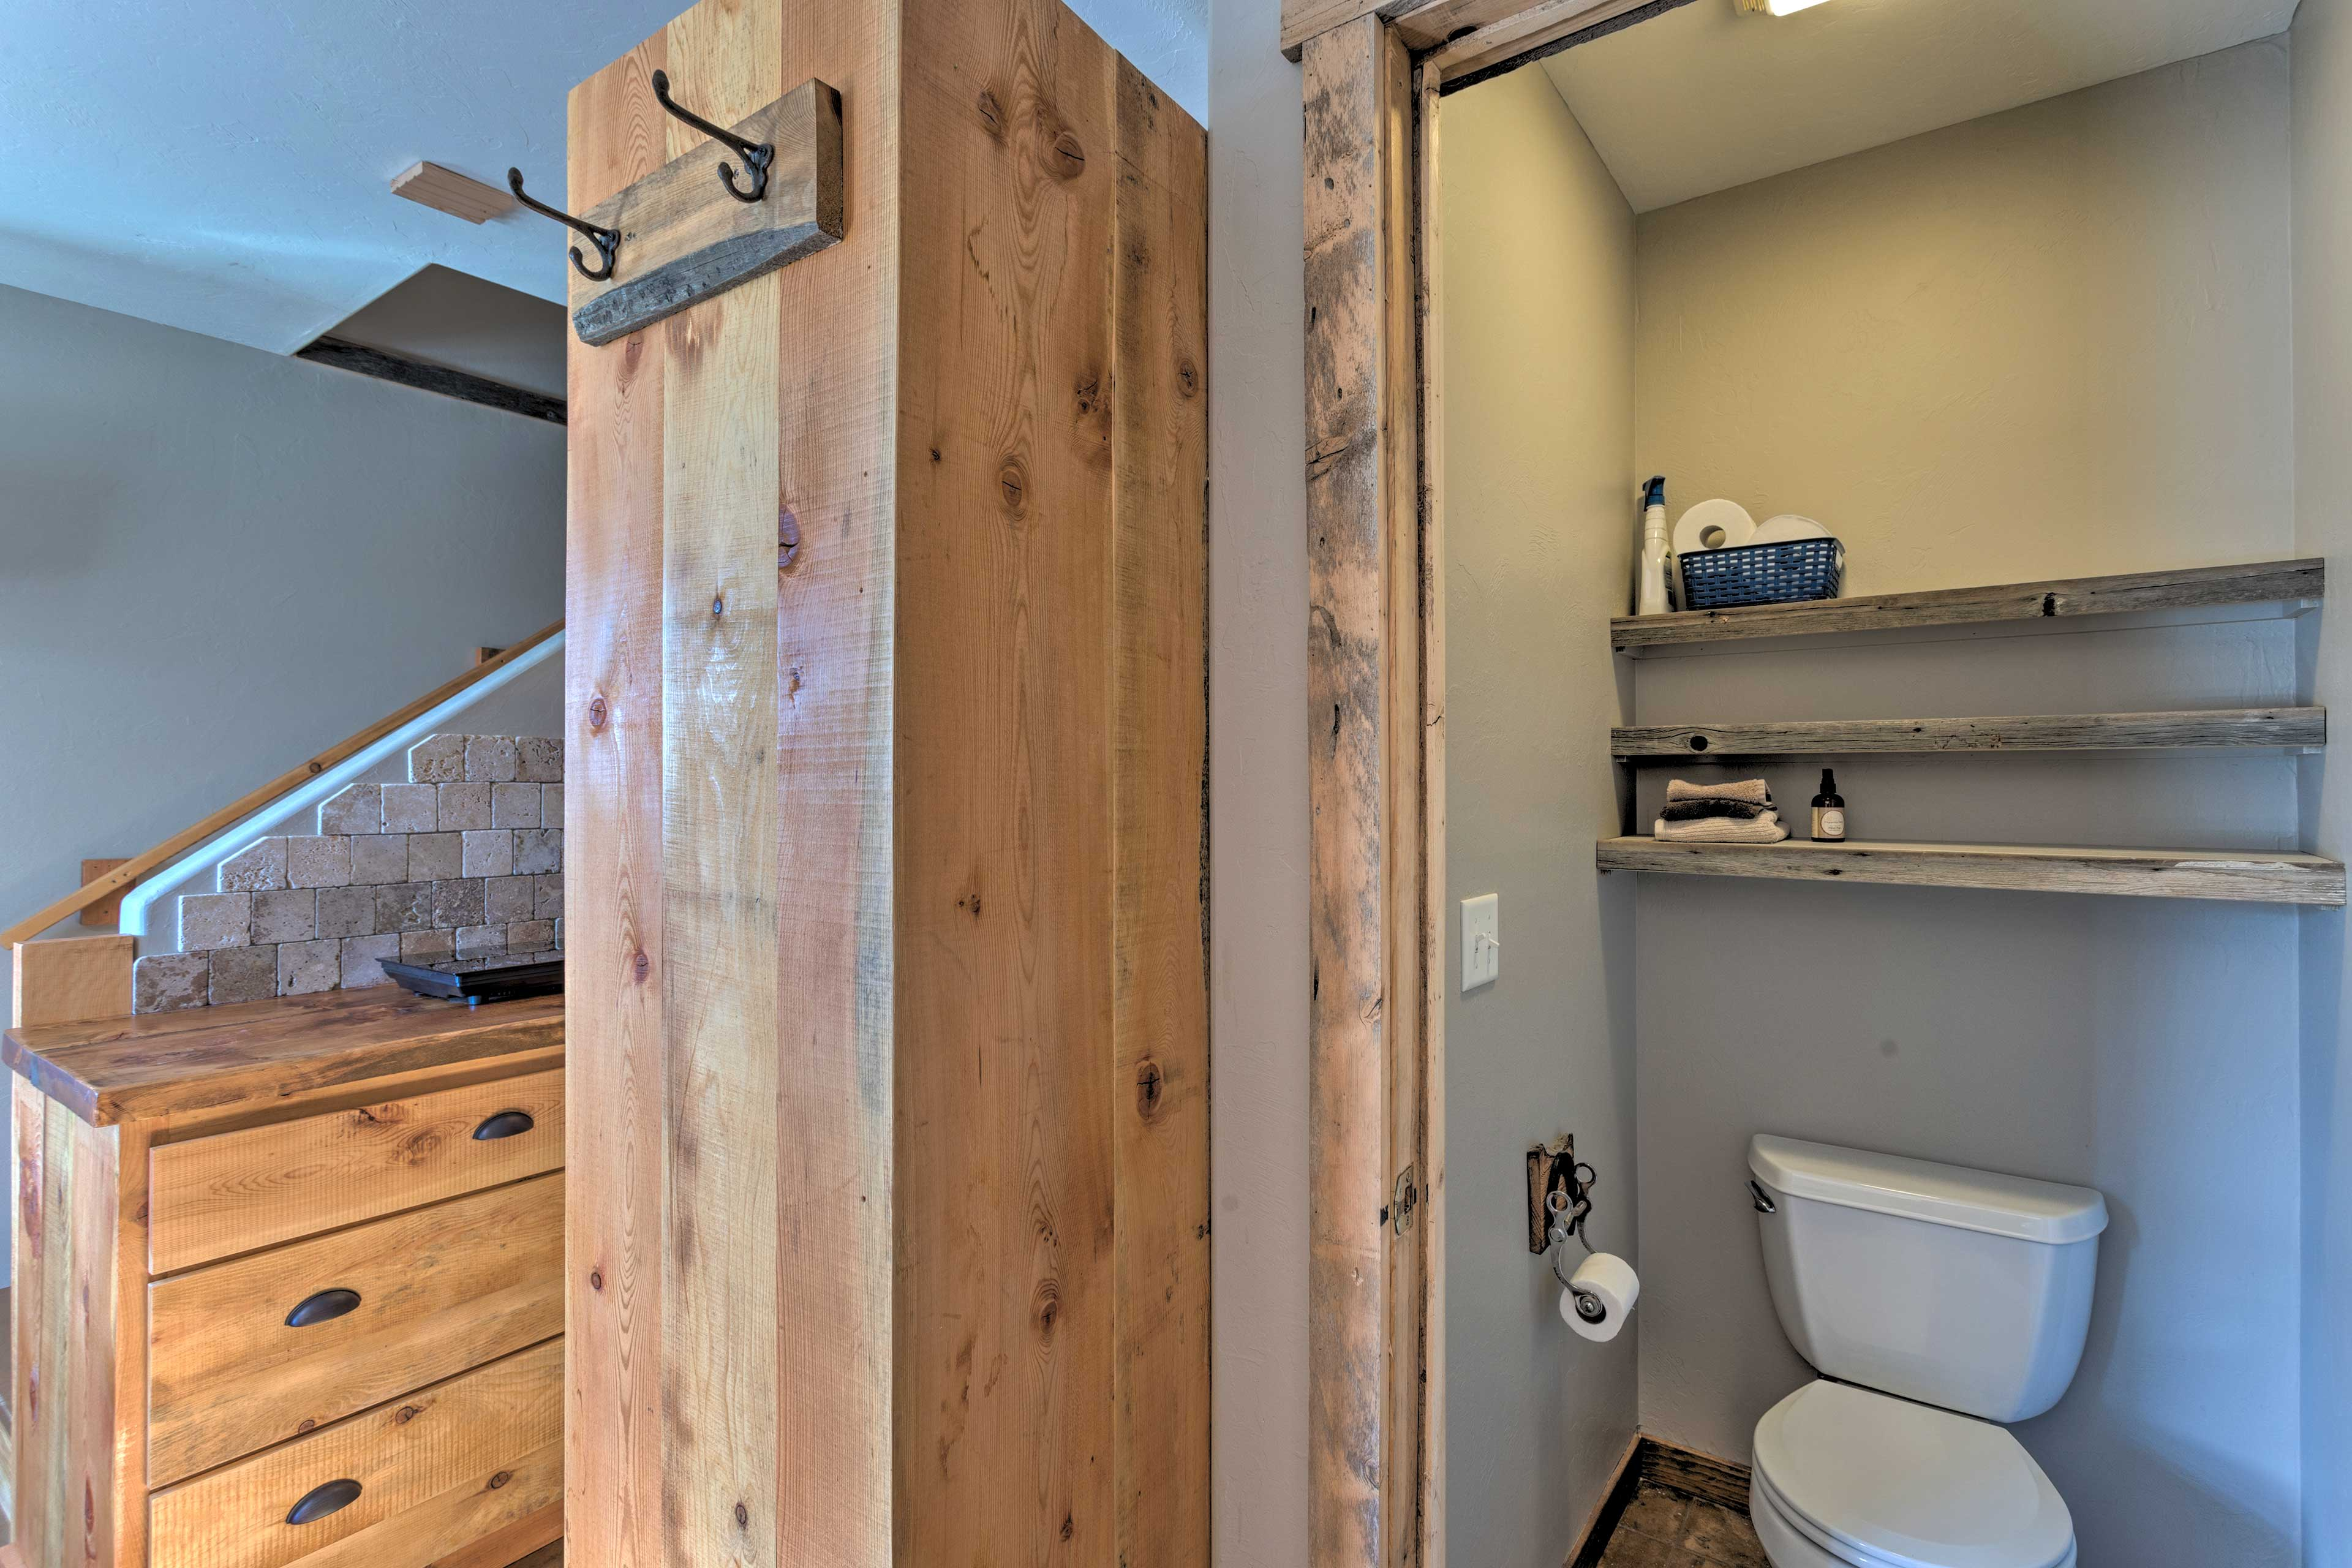 A half-bath is located just off the kitchen.